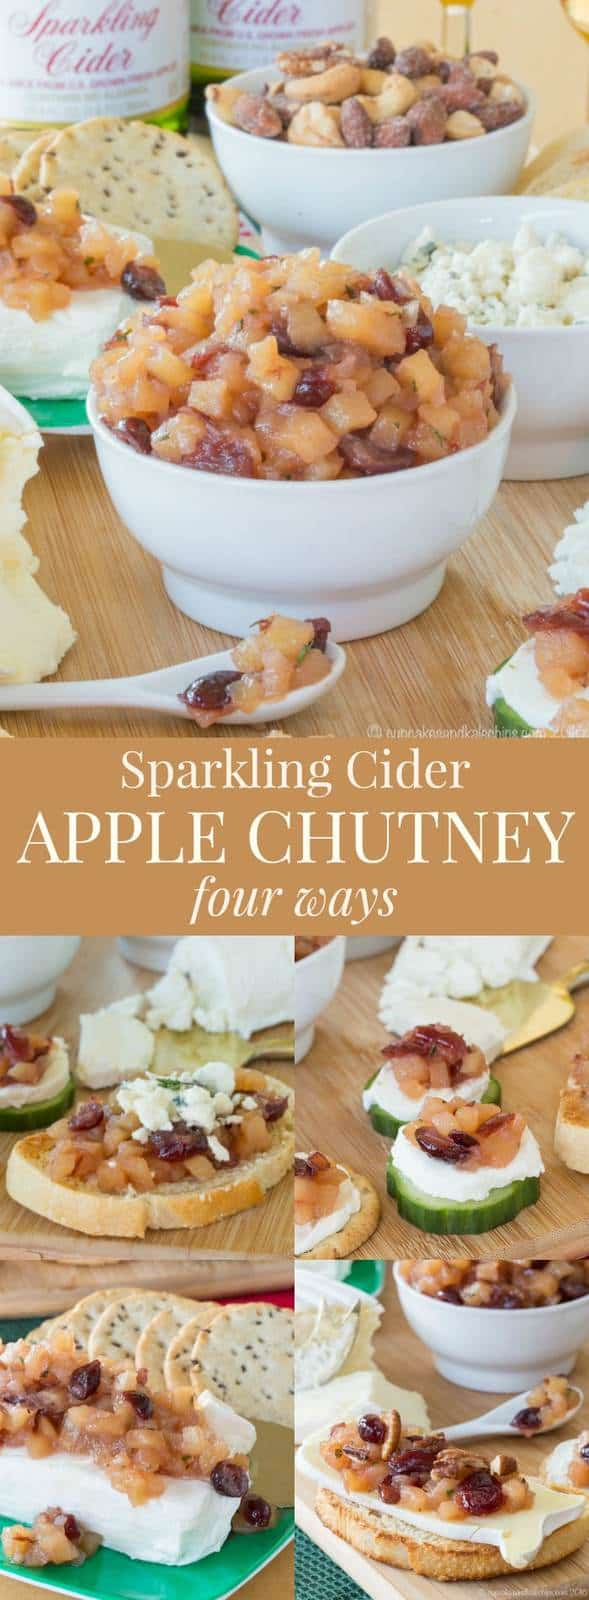 Sparkling Cider Apple Chutney - an easy recipe with four serving ideas for appetizers, or to top chicken, pork, or salads.